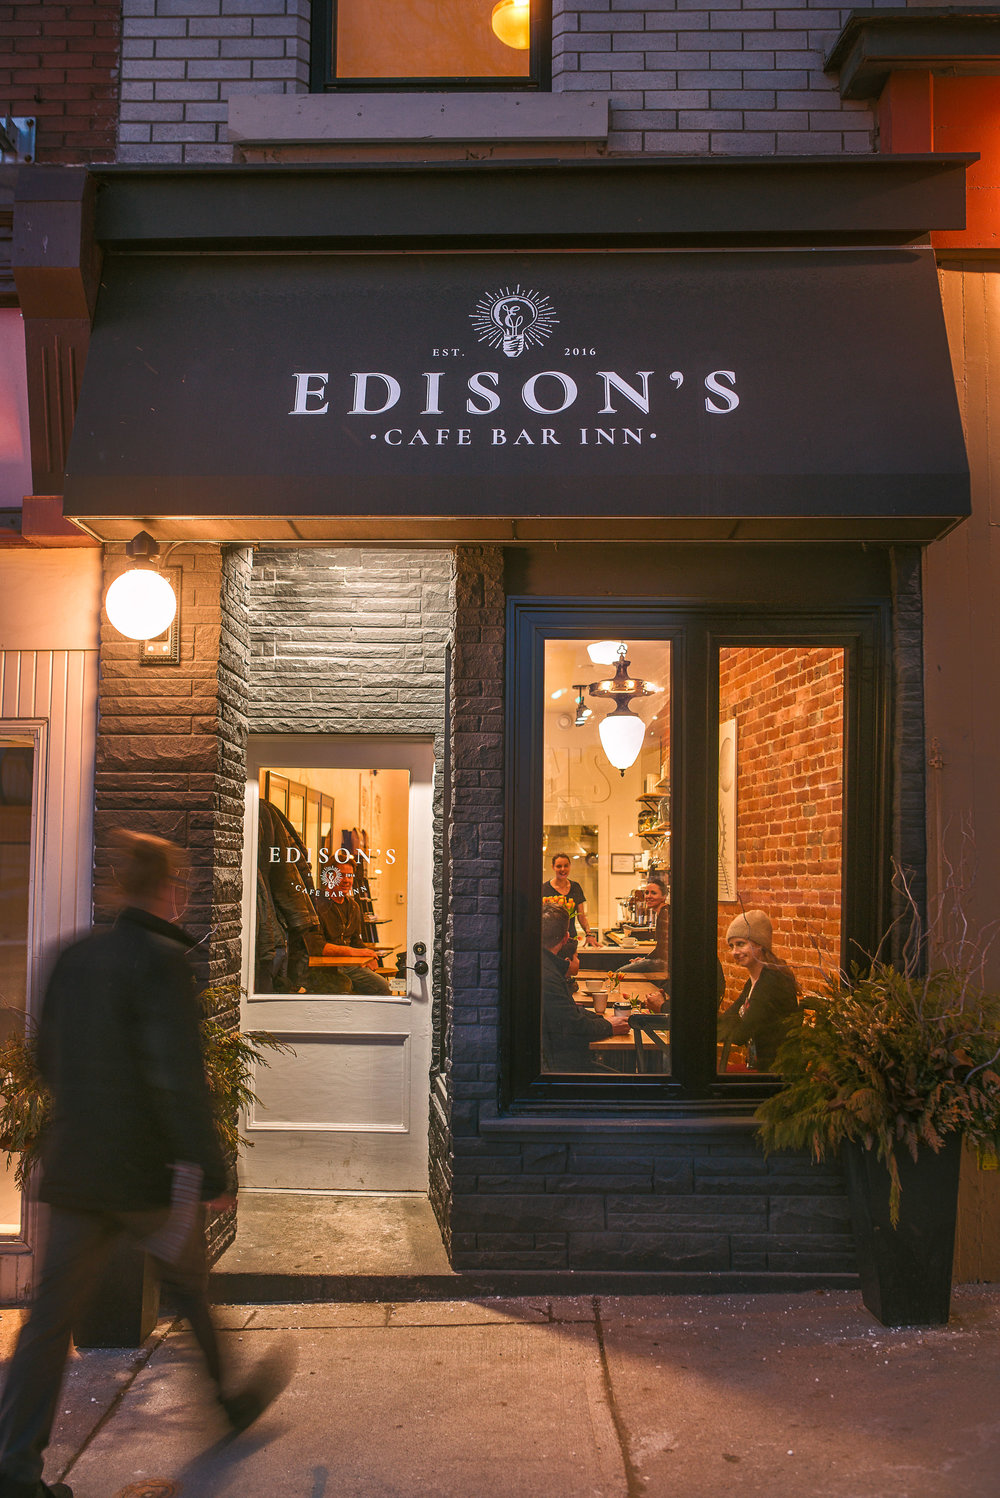 WE'D LOVE YOU TO BE OUR GUEST   EDISON'S Cafe Bar and Inn, in the heart of downtown Stratford, Ontario, is a space designed to give you a small, deserved break from the daily grind. We want to inspire you by our ideas, design, music, snacks, beverages and friendship. When you leave, our hope is that you are refreshed and energized to take on whatever lies ahead with passion, strength and humour.